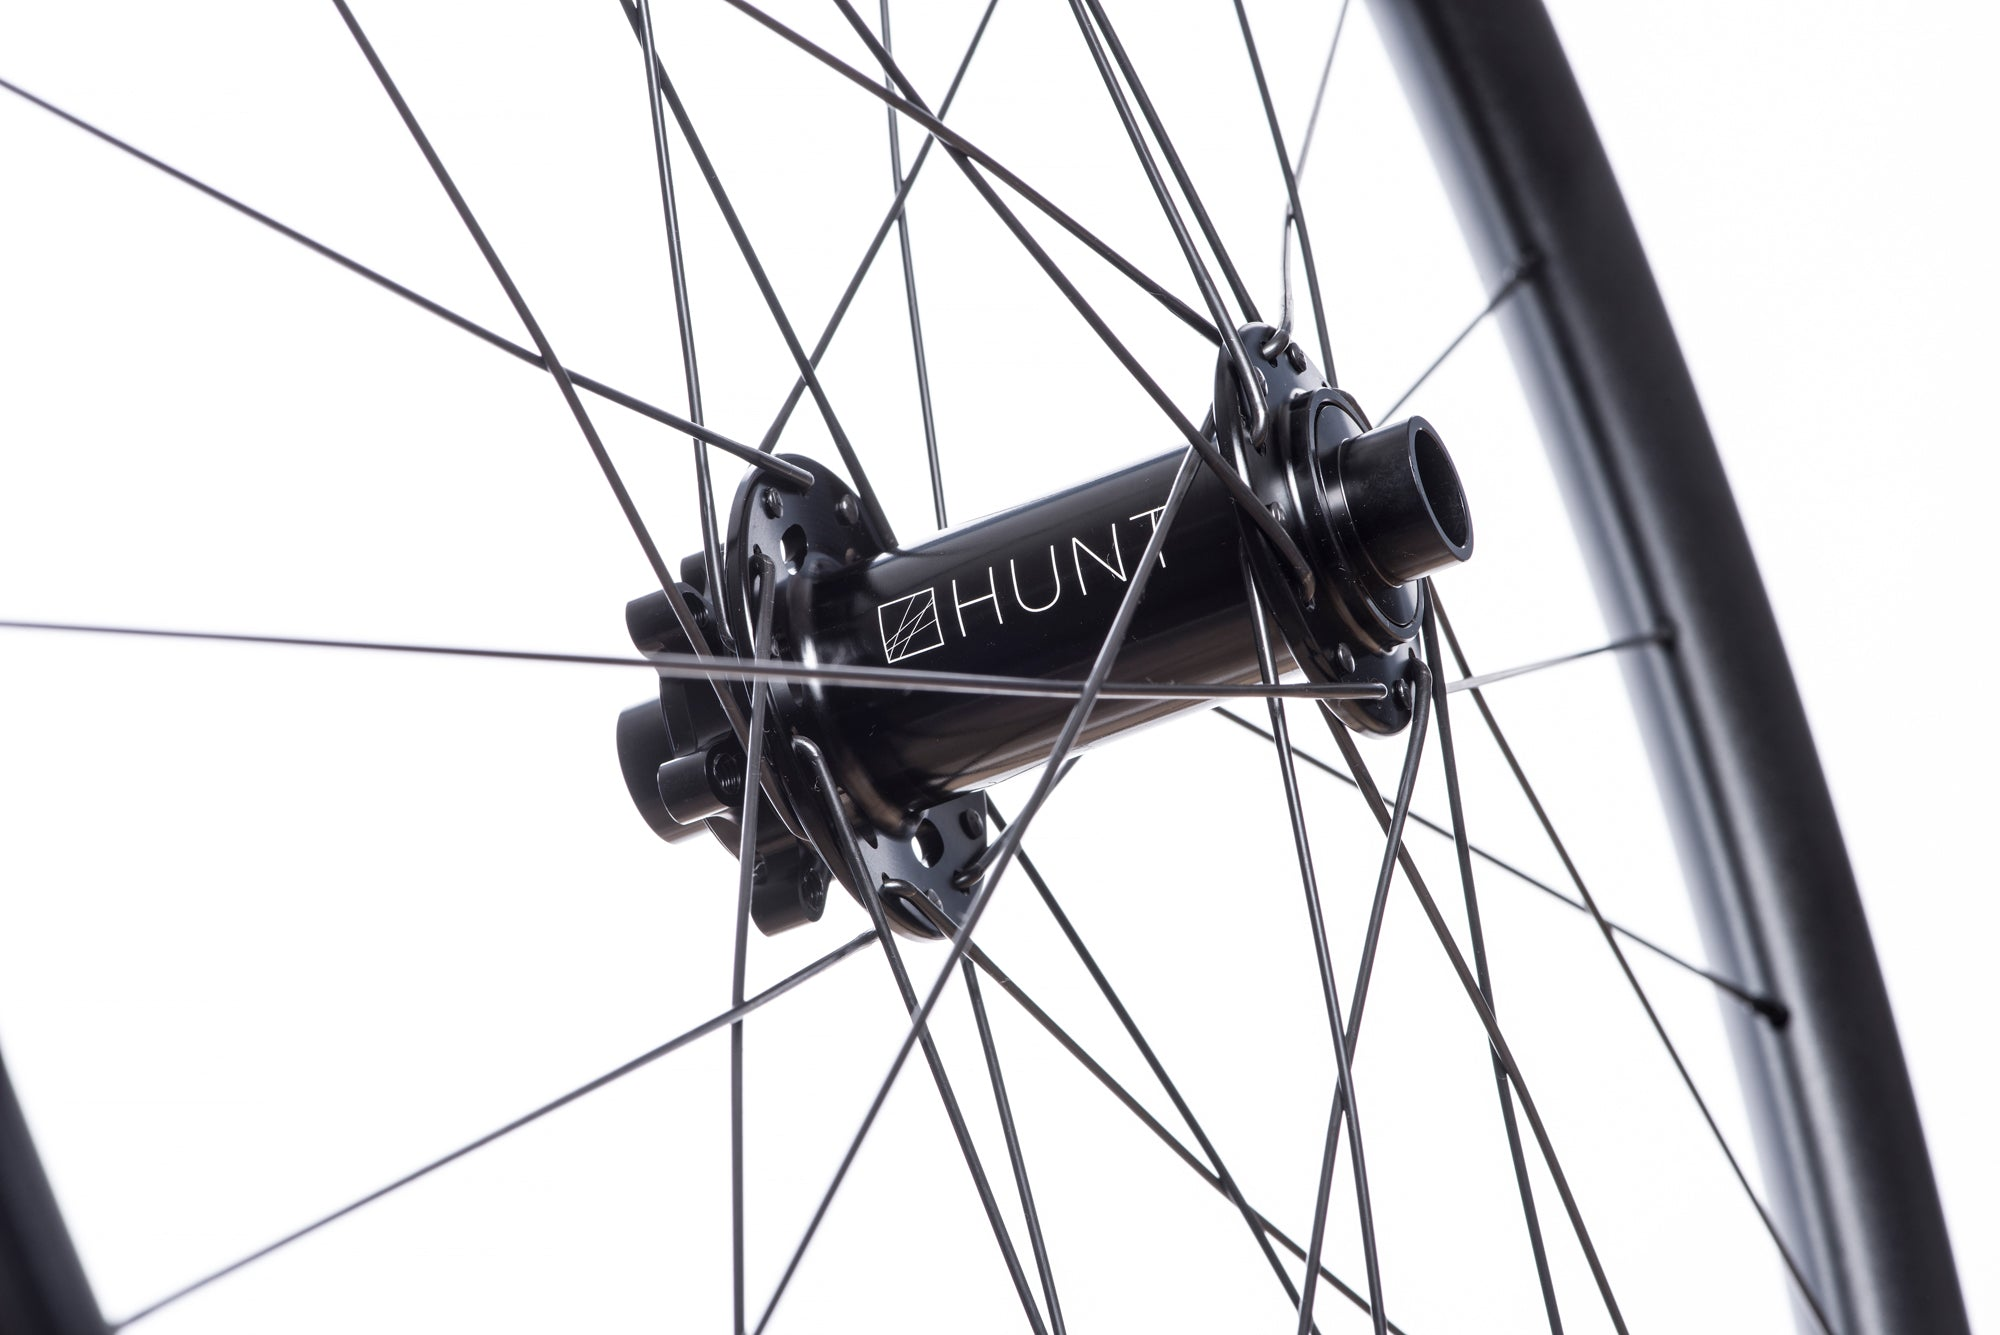 <h1>Front Hub</h1><i>Suited to match the needs of the modern trail bike rider. Featuring durable bearings and 7075-T6 series alloy axles to increase stiffness. These hubs have been selected based on their ability to perform on the most aggressive trails.</i>